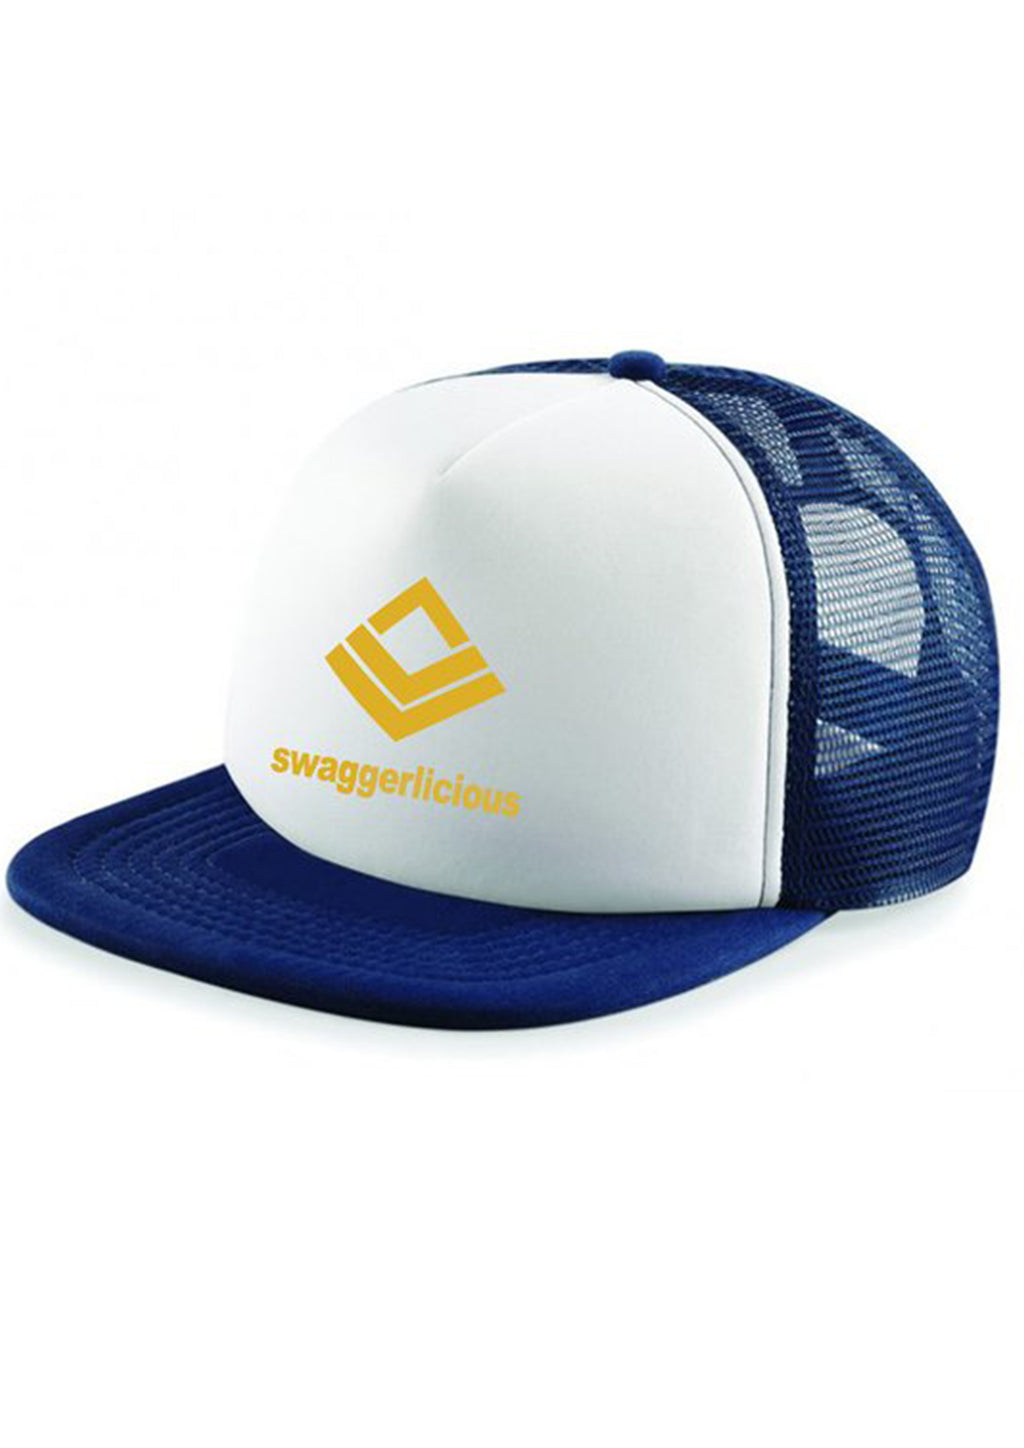 Swaggerlicious Classic White and Navy Blue Snapback with Gold Logo - swaggerlicious-clothing.com